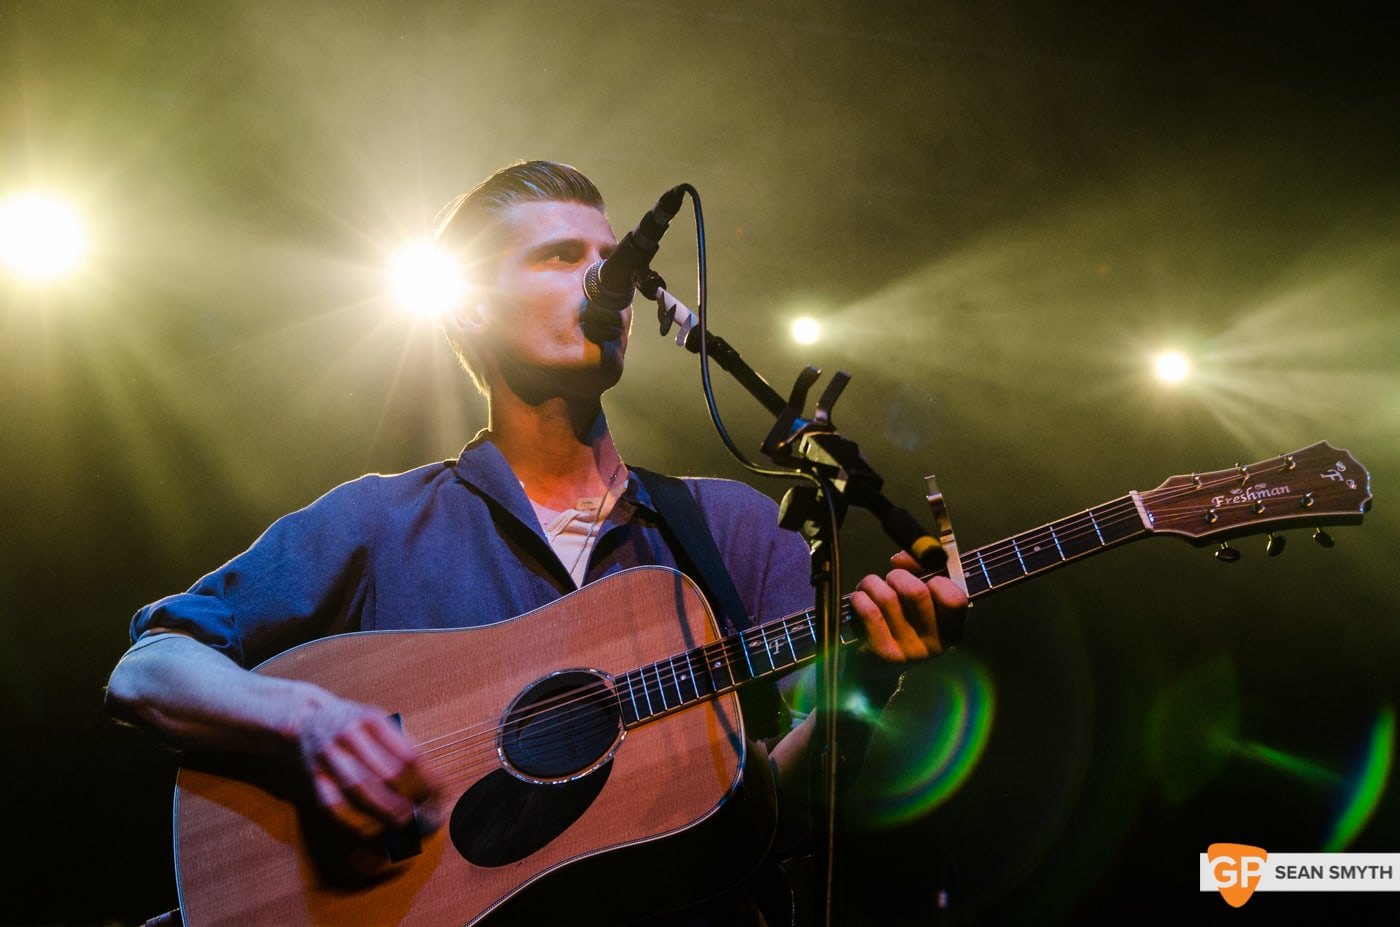 hudson-taylor-at-the-olympia-theatre-26-2-15-by-sean-smyth-19-of-26_16755585101_o